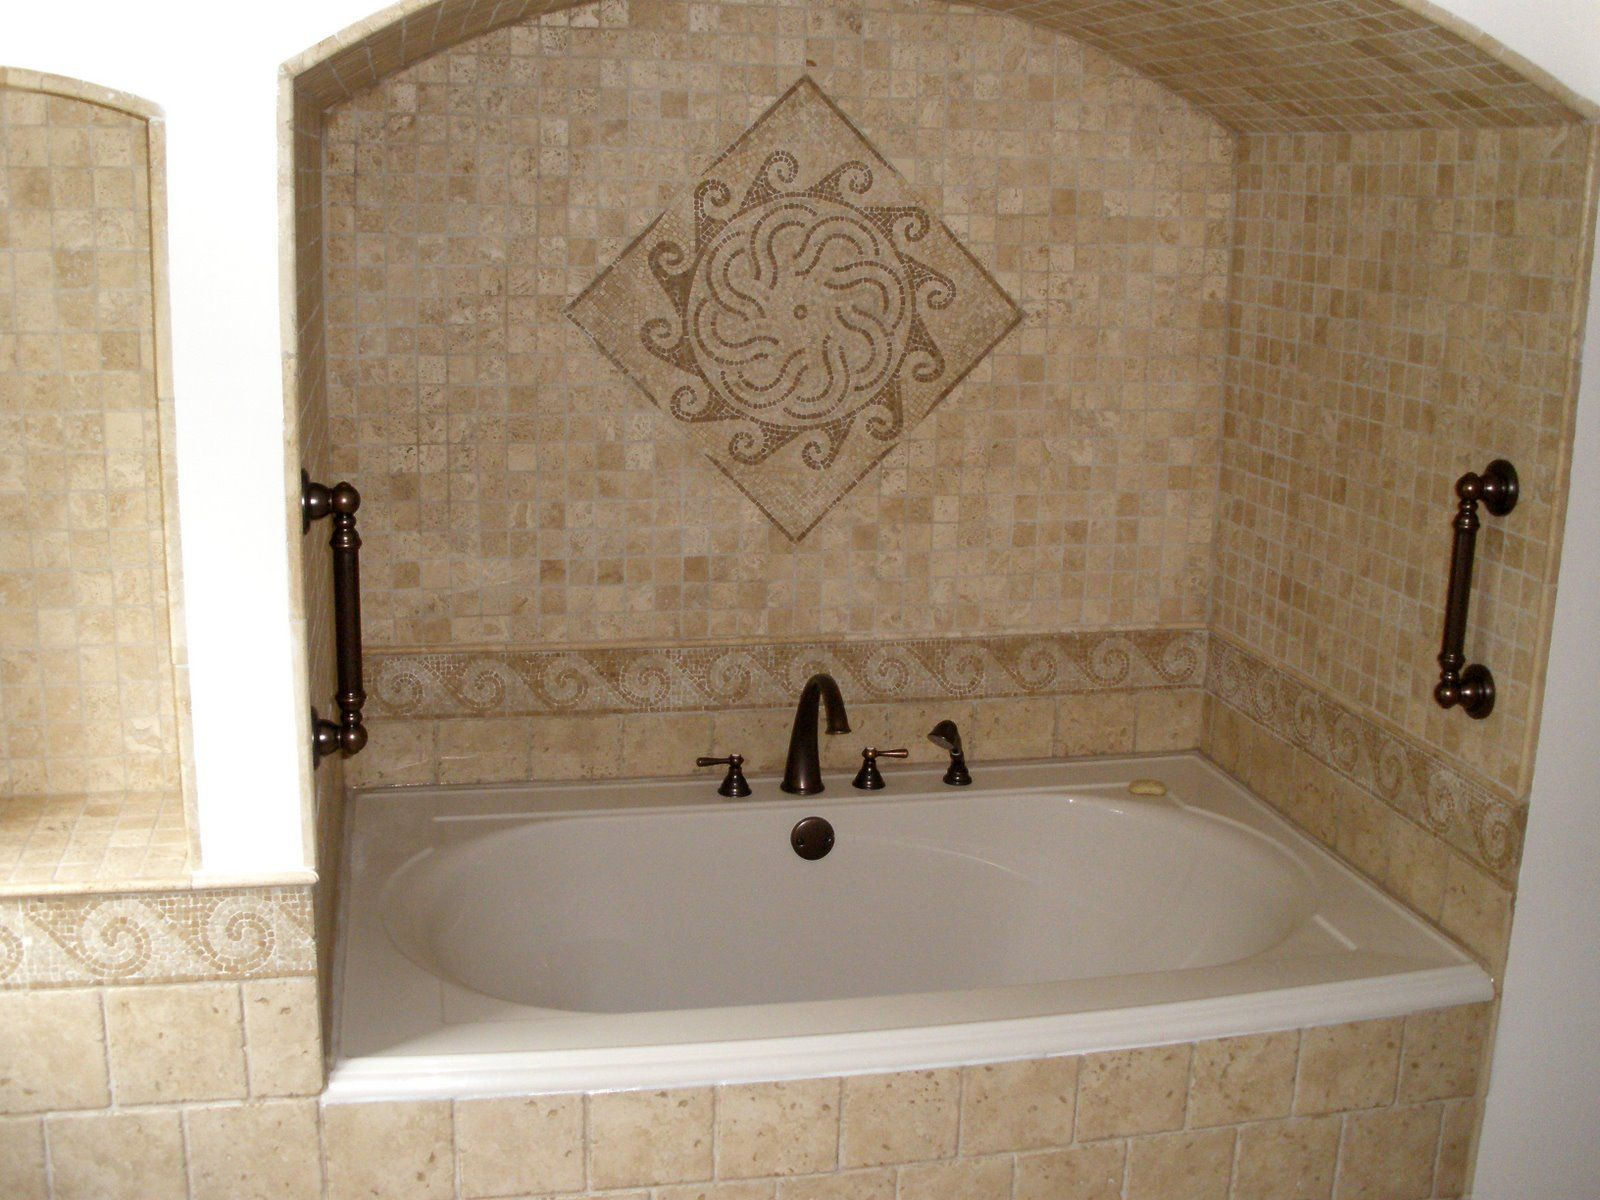 Bathroom tile design gallery images of bathrooms shower Bathroom tile gallery